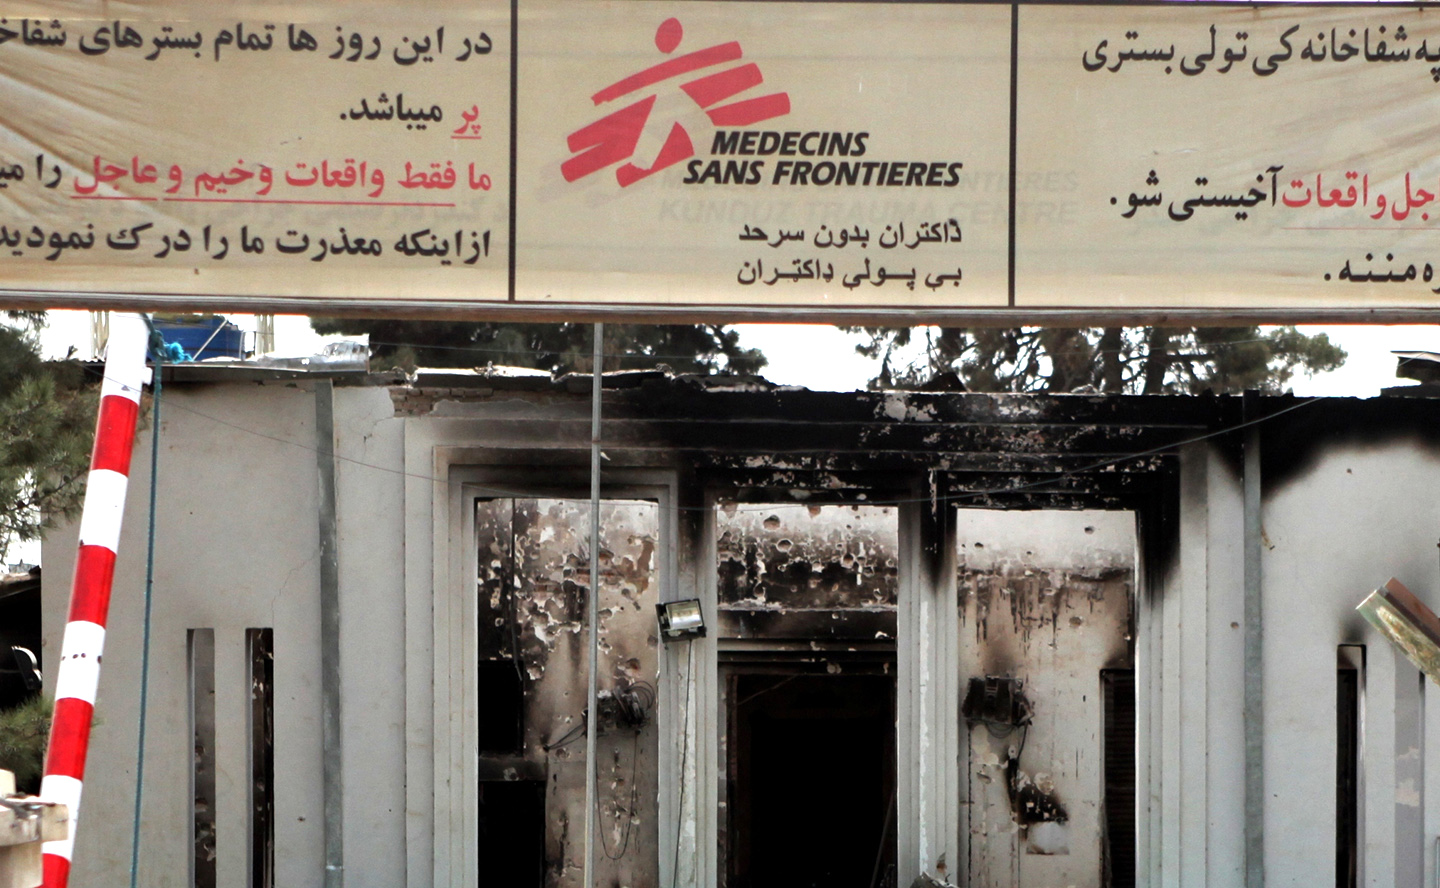 (151011) -- KUNDUZ, Oct. 11, 2015 (Xinhua) -- Photo taken on Oct. 11, 2015 shows the destroyed Medecins Sans Frontieres (MSF) hospital after a U.S. airstrike in Kunduz city, capital of northern Kunduz province of Afghanistan. The U.S. military, which allegedly carried out air strikes in support of the Afghan forces, inadvertently hit a hospital run by MSF last Saturday, killing 22, including 12 medical staff and injuring 37 others. (Xinhua/Omid) (Newscom TagID: xnaphotos565468.jpg) [Photo via Newscom]